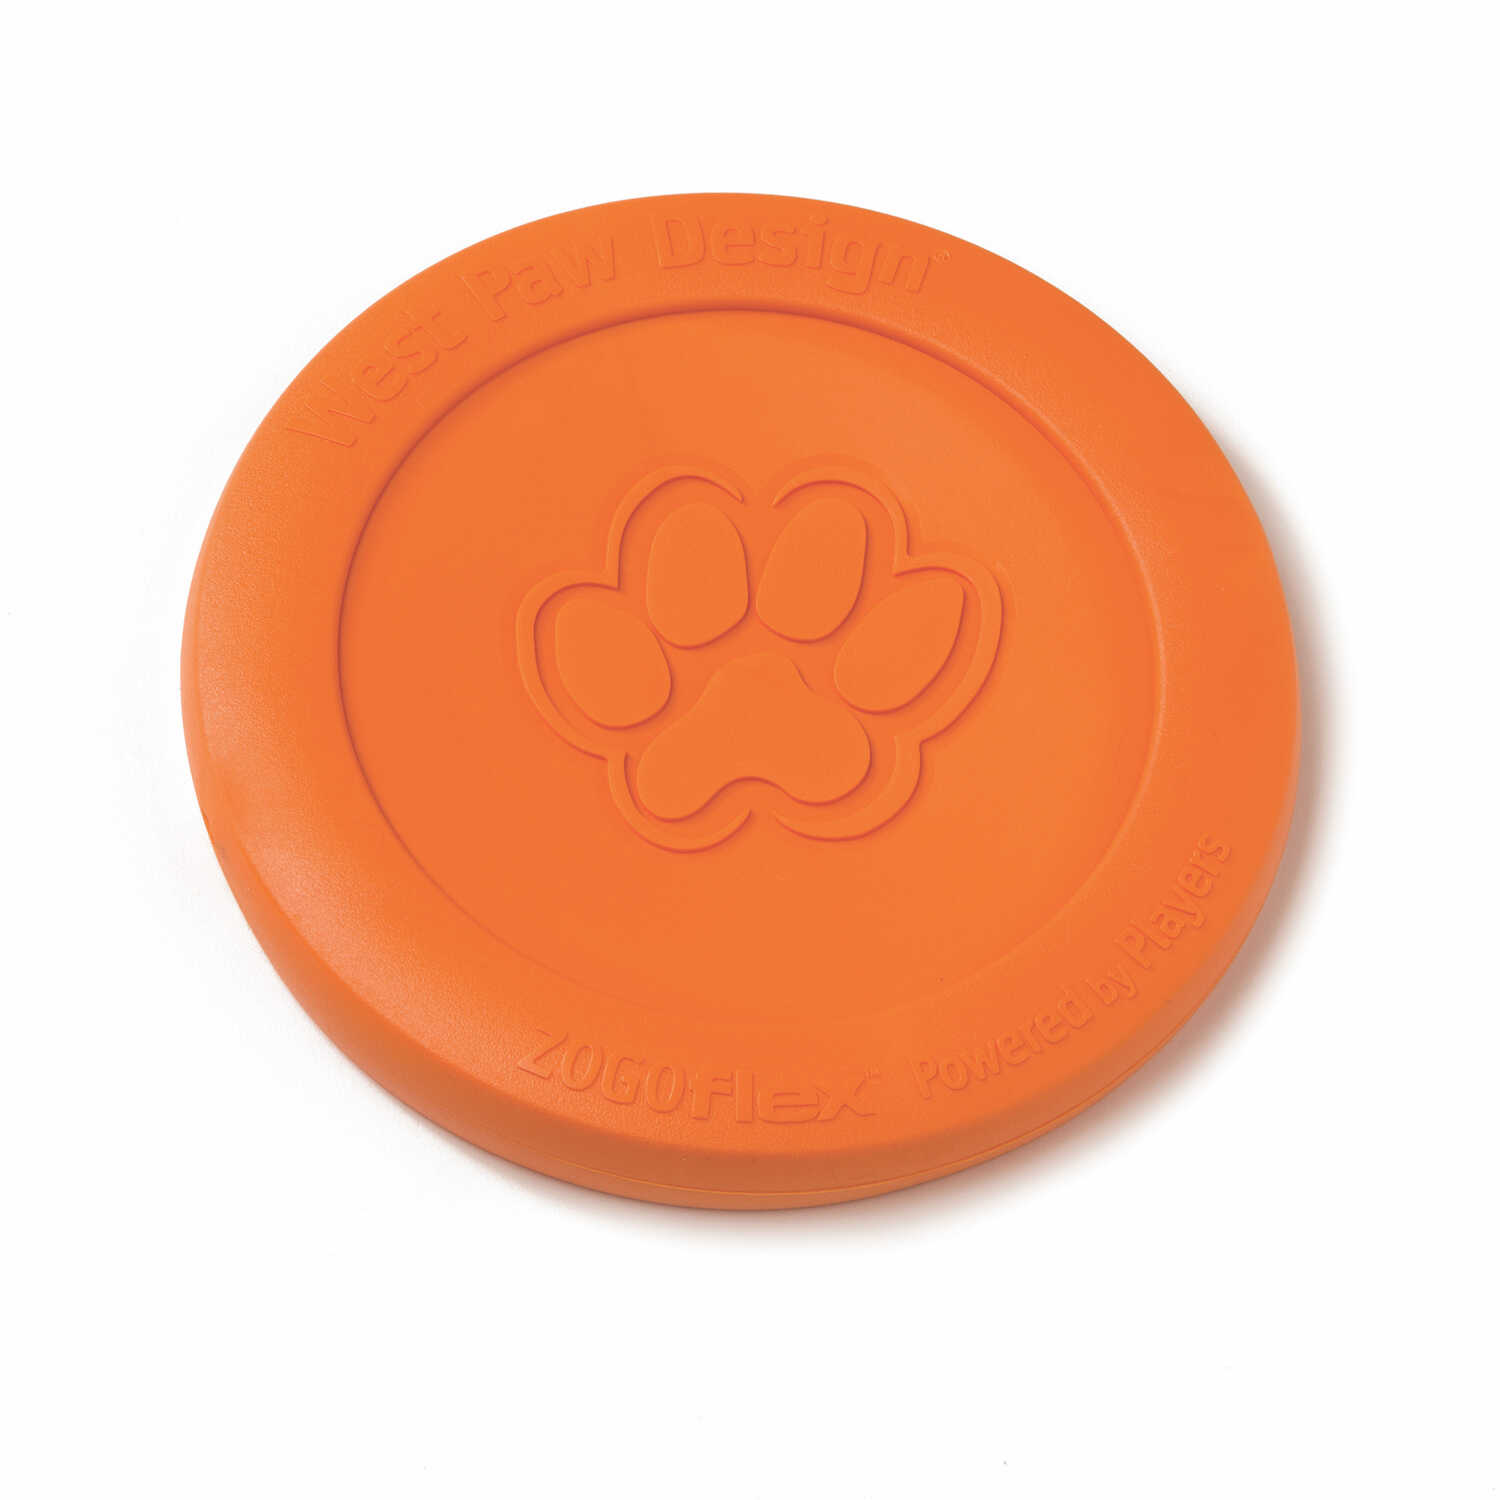 West Paw  Zogoflex  Orange  Synthetic Rubber  Frisbee  Small  Zisc Disc